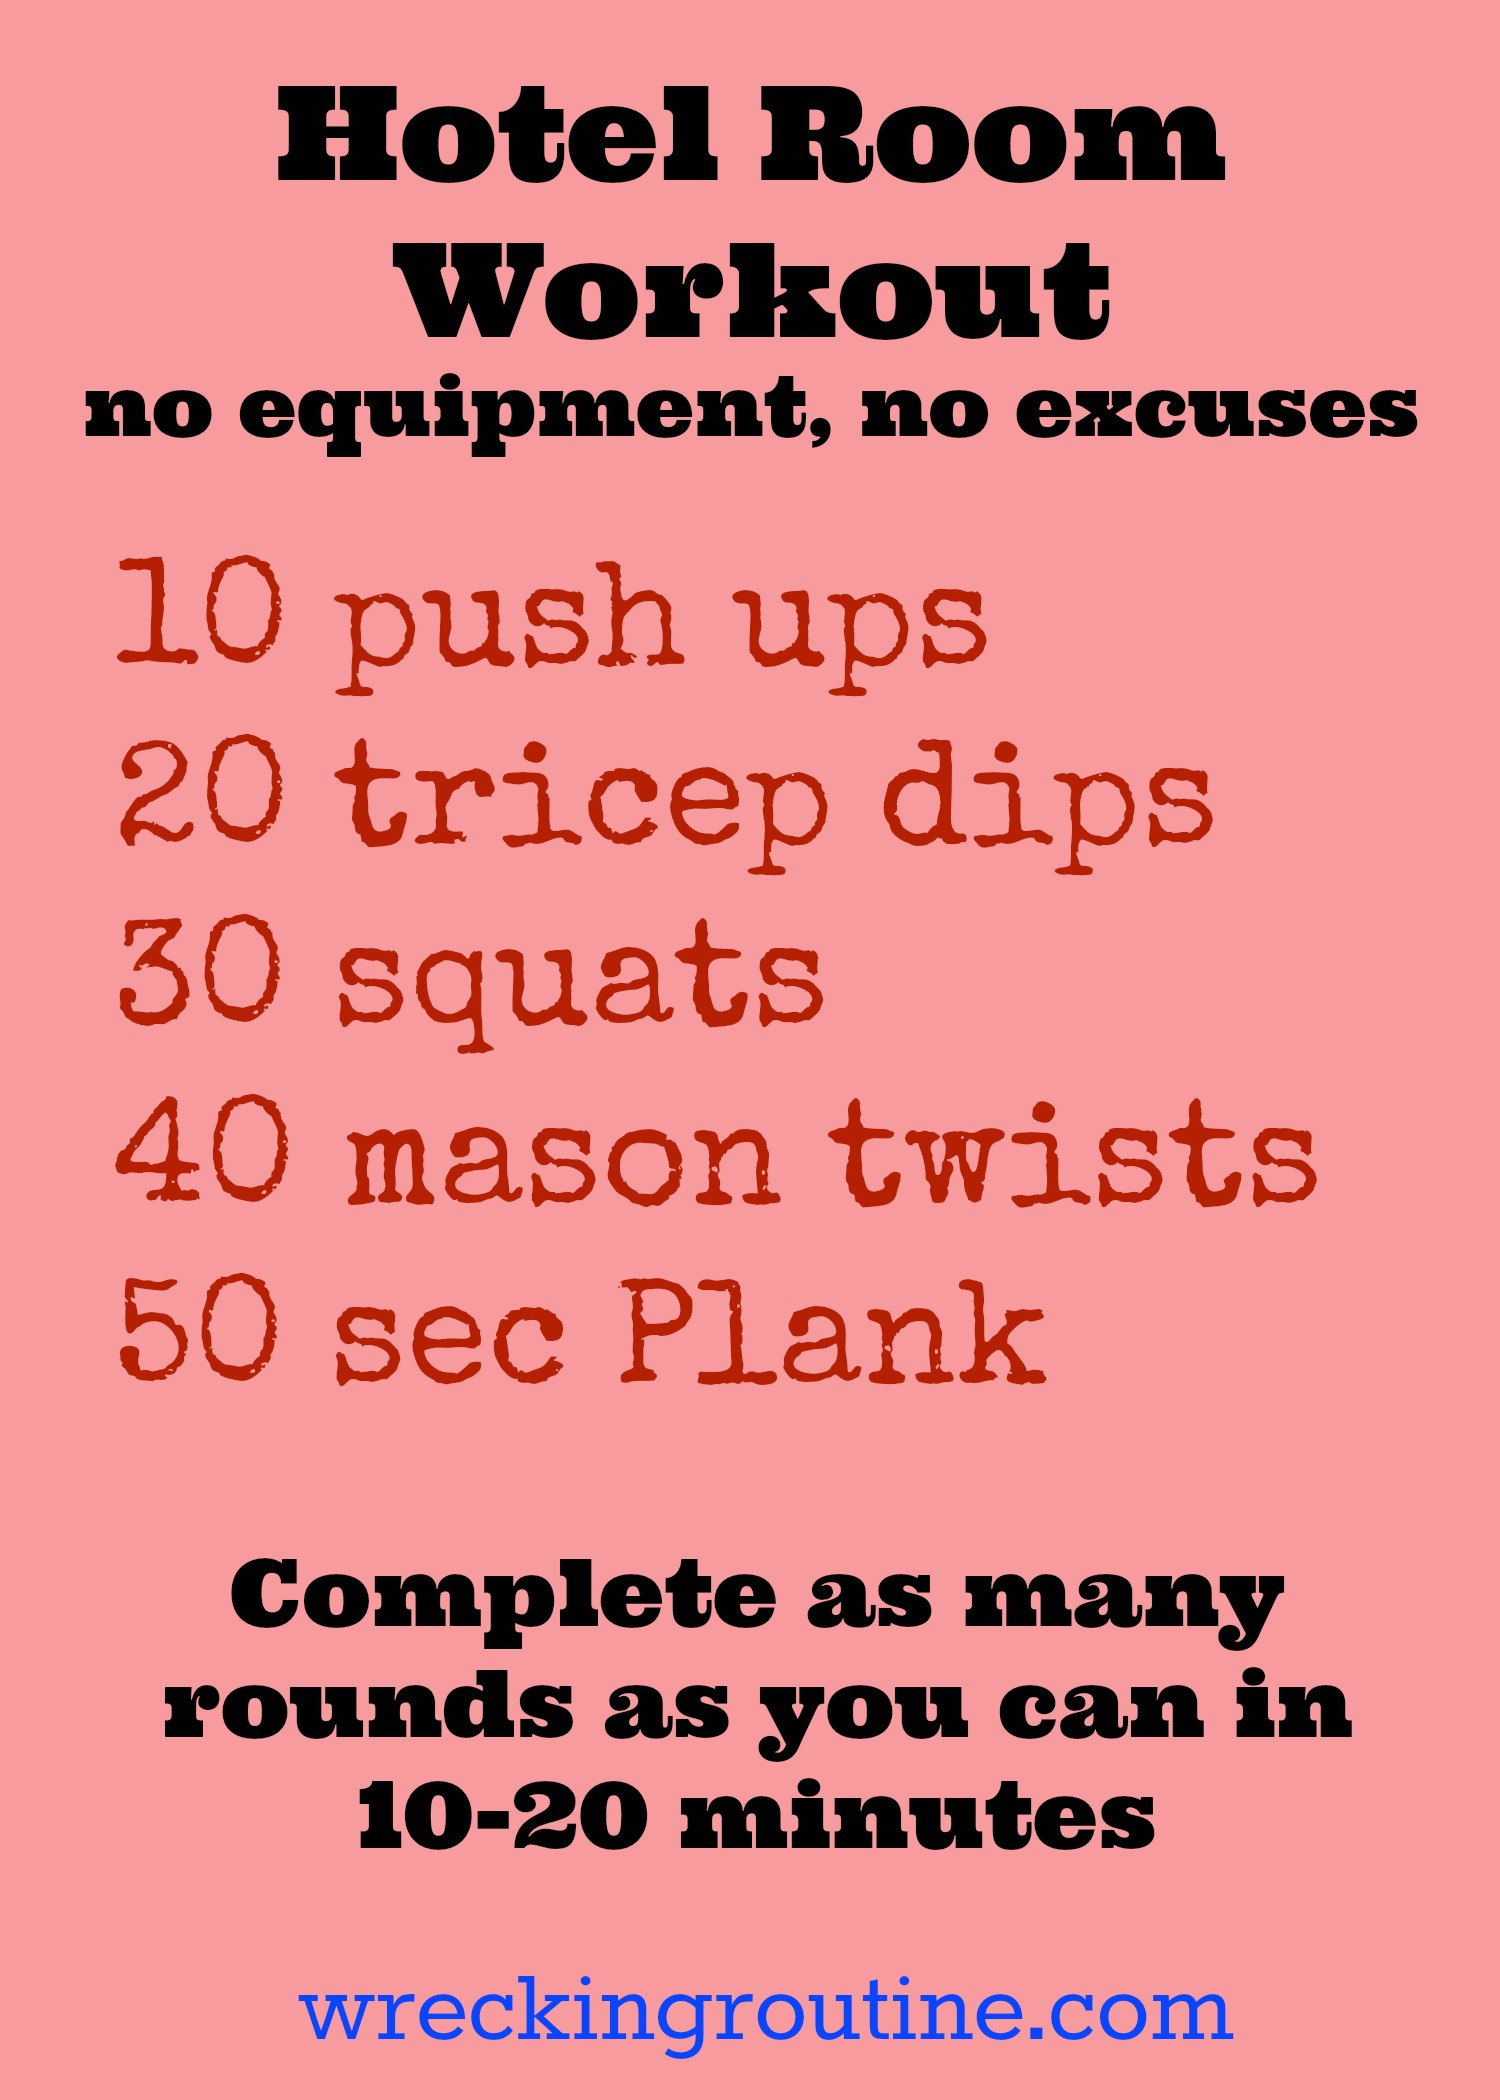 15 No Equipment Workouts Wrecking Routine Circuit Training Exercises Hotel Room Workout And Can Be Done In A Small Space Win